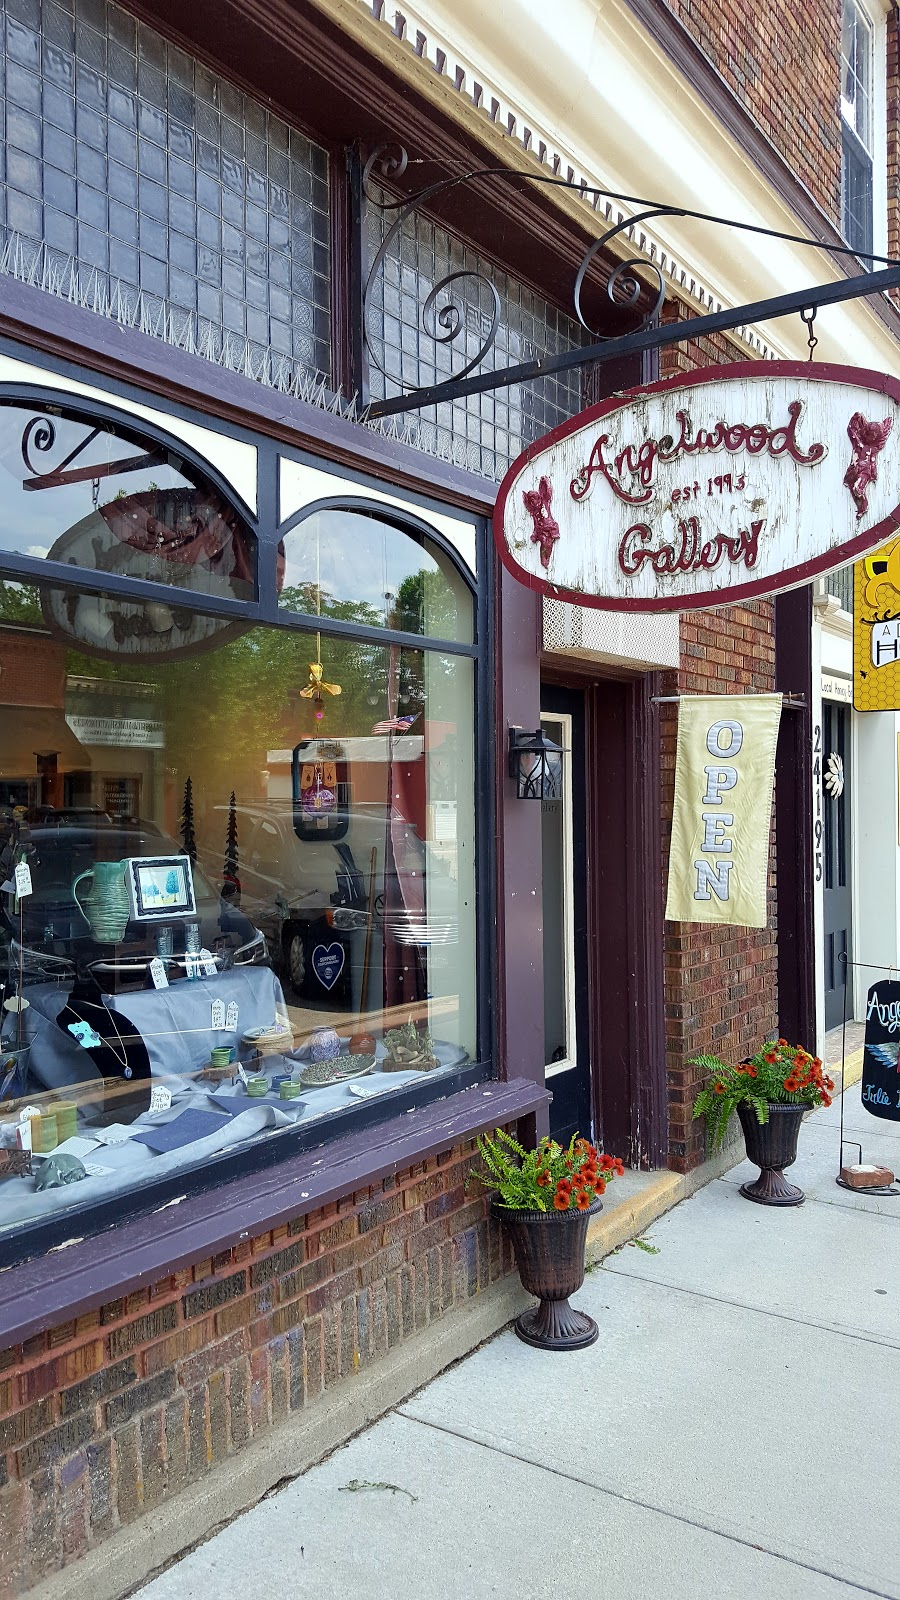 Angelwood Gallery - art gallery    Photo 5 of 7   Address: 24195 Front St, Grand Rapids, OH 43522, USA   Phone: (419) 832-0625